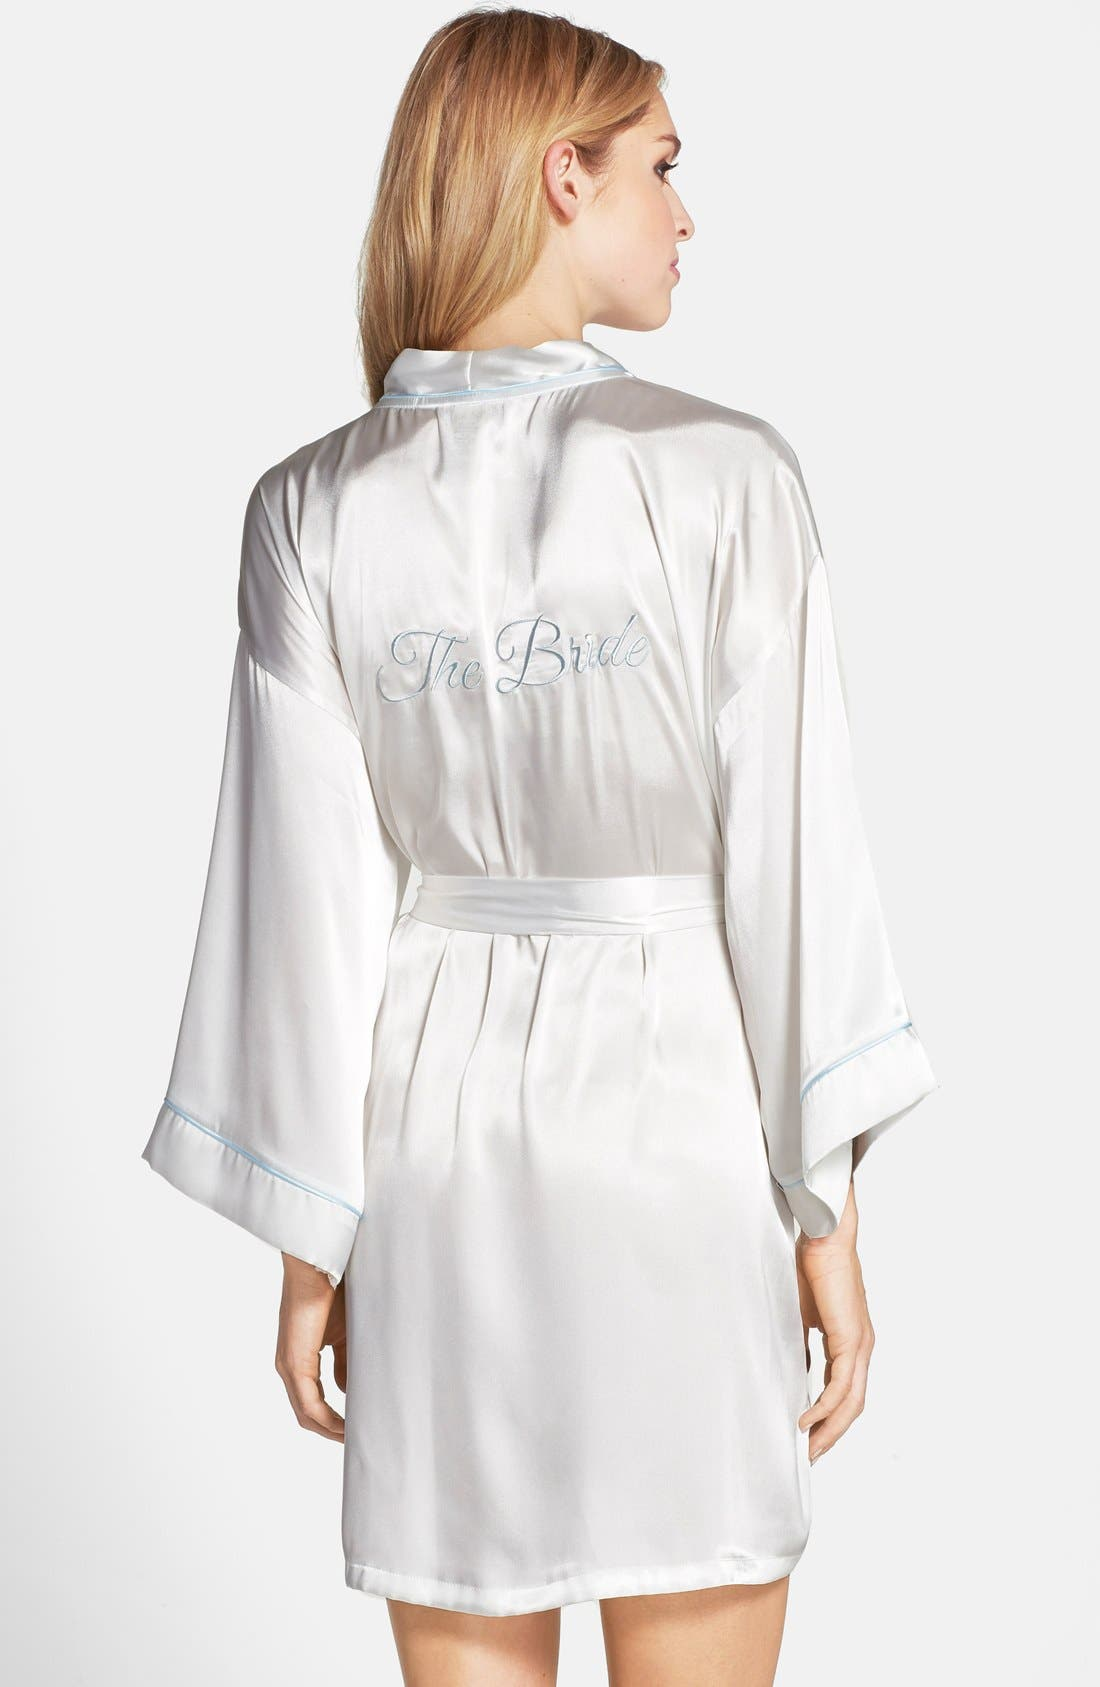 IN BLOOM BY JONQUIL 'For the Bride' Robe, Main, color, 900